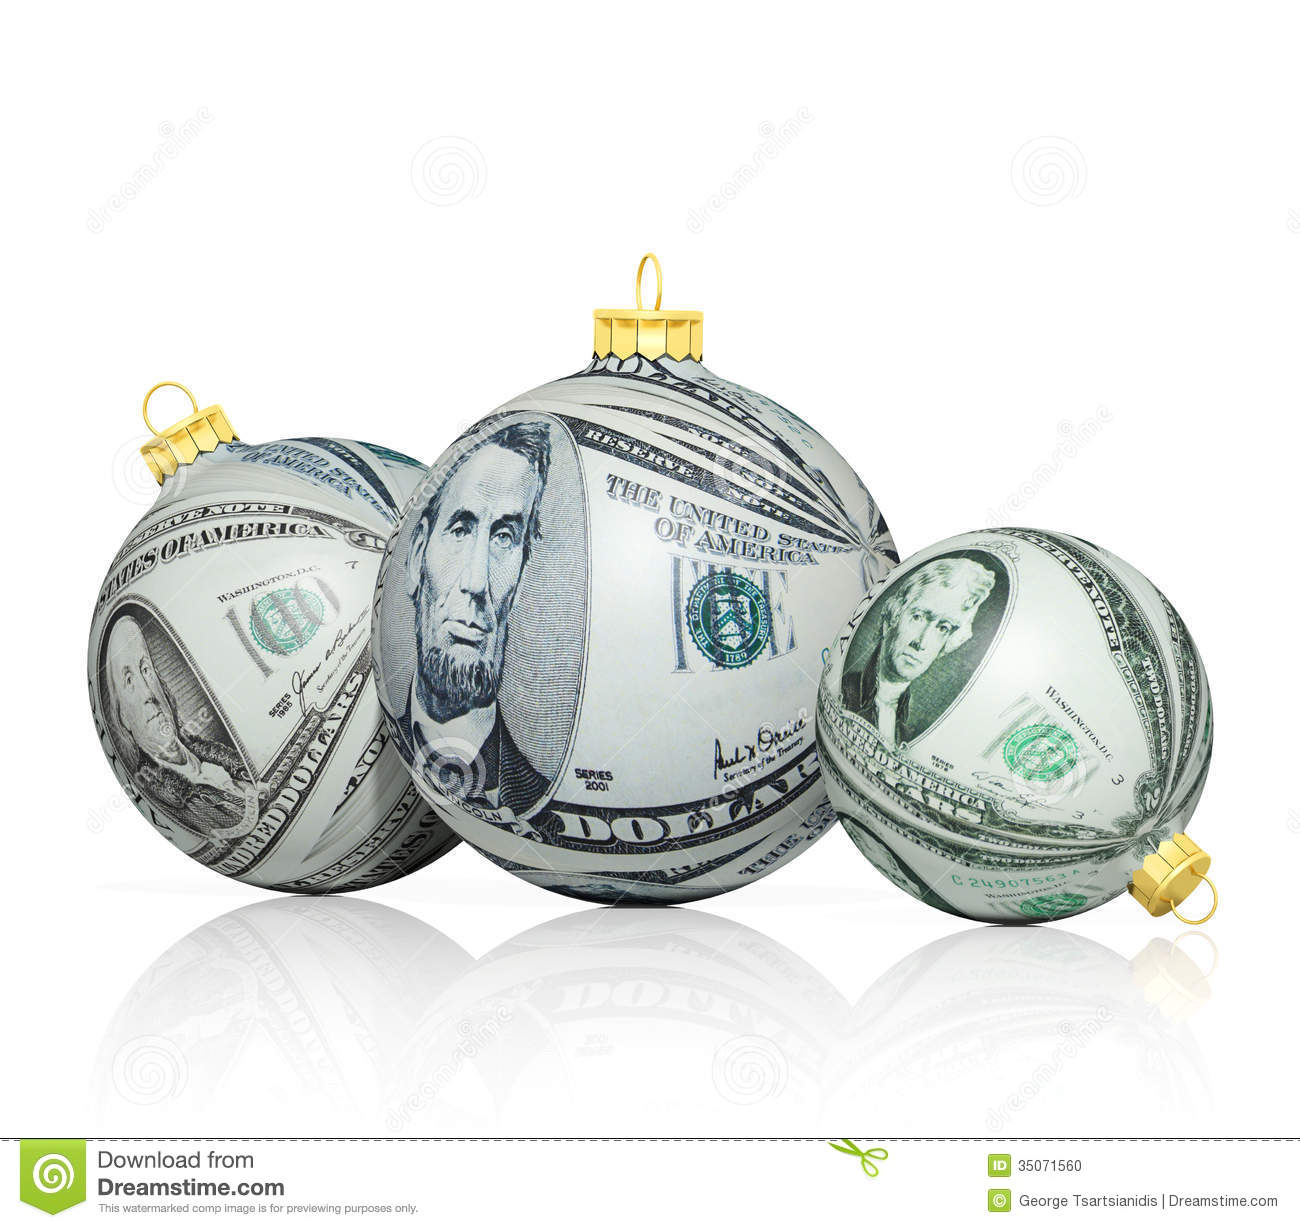 Christmas money clipart 20 free Cliparts | Download images ...